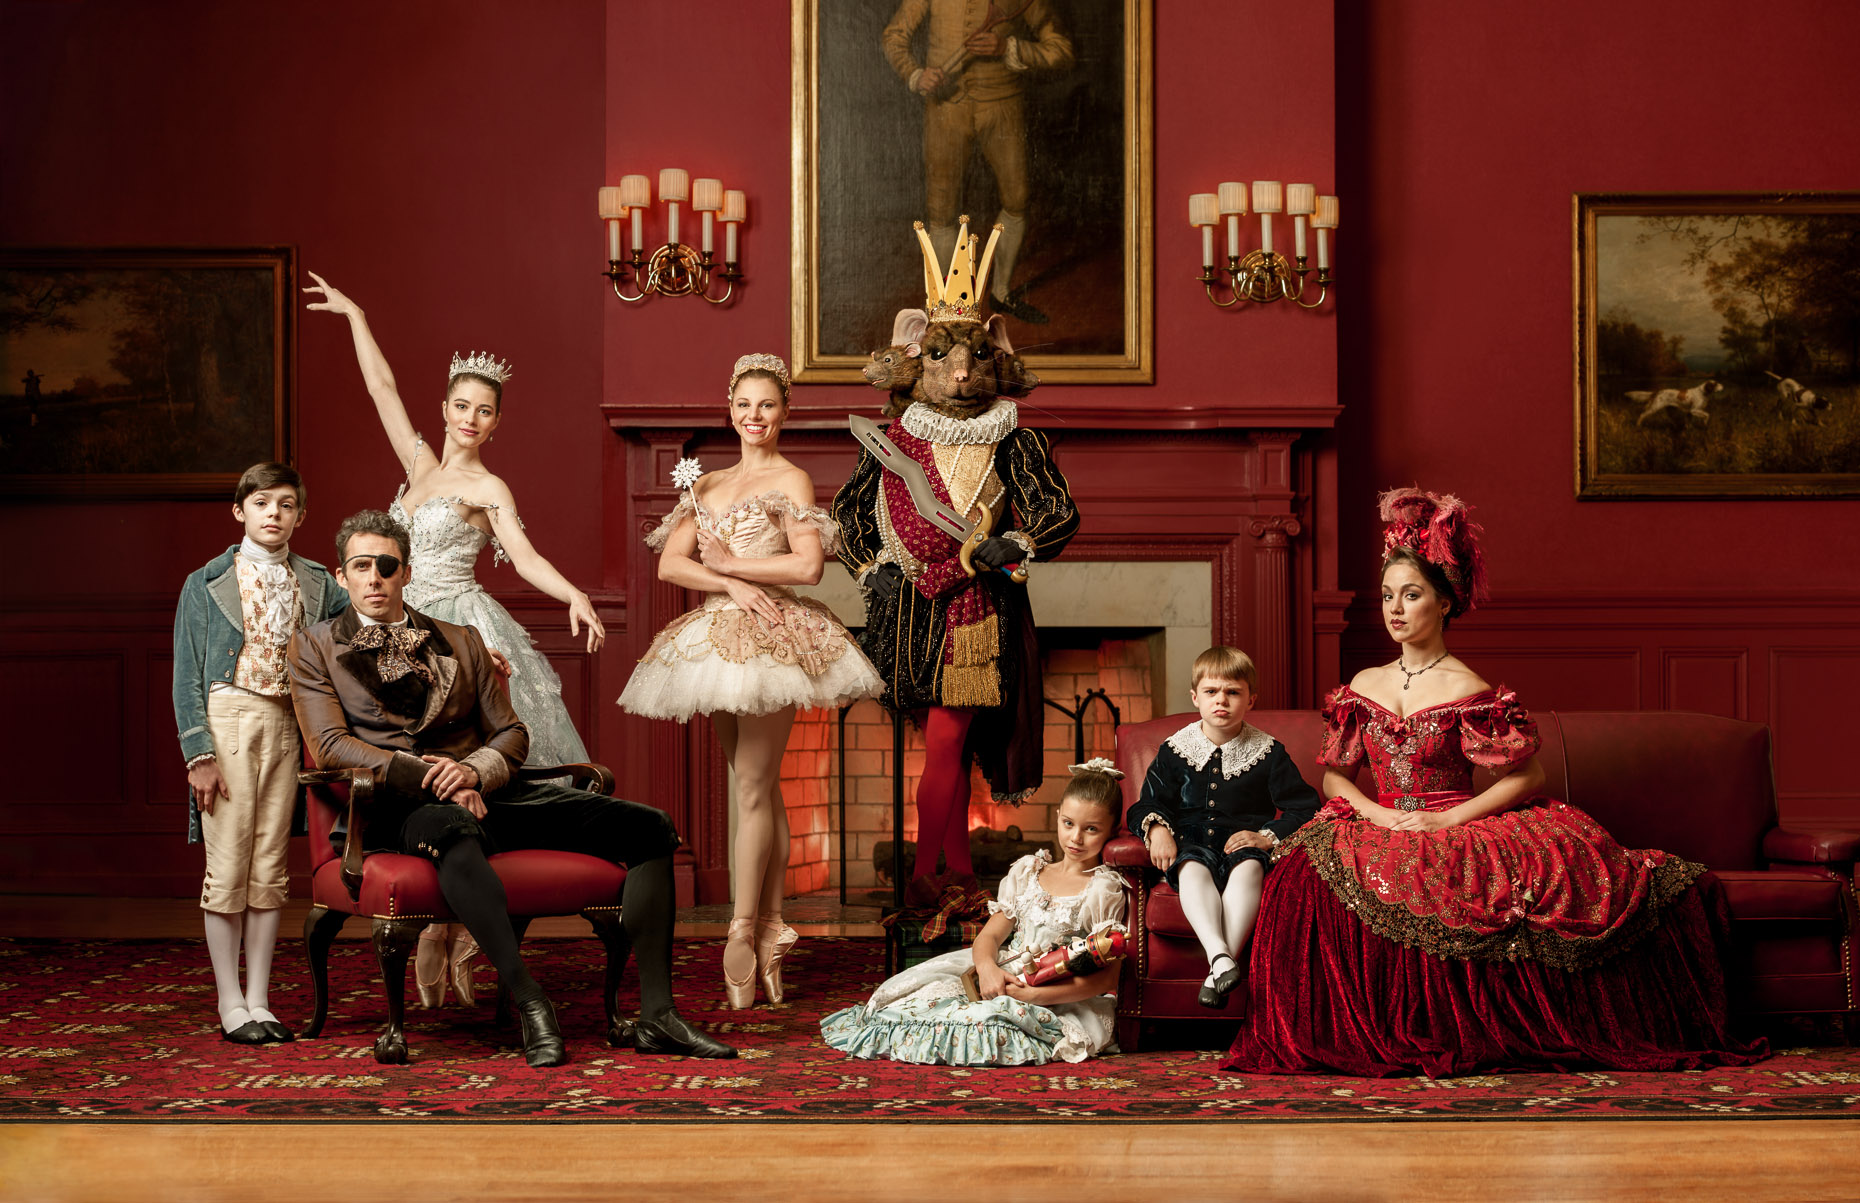 commercial-portraits-group-ballet-nutcracker